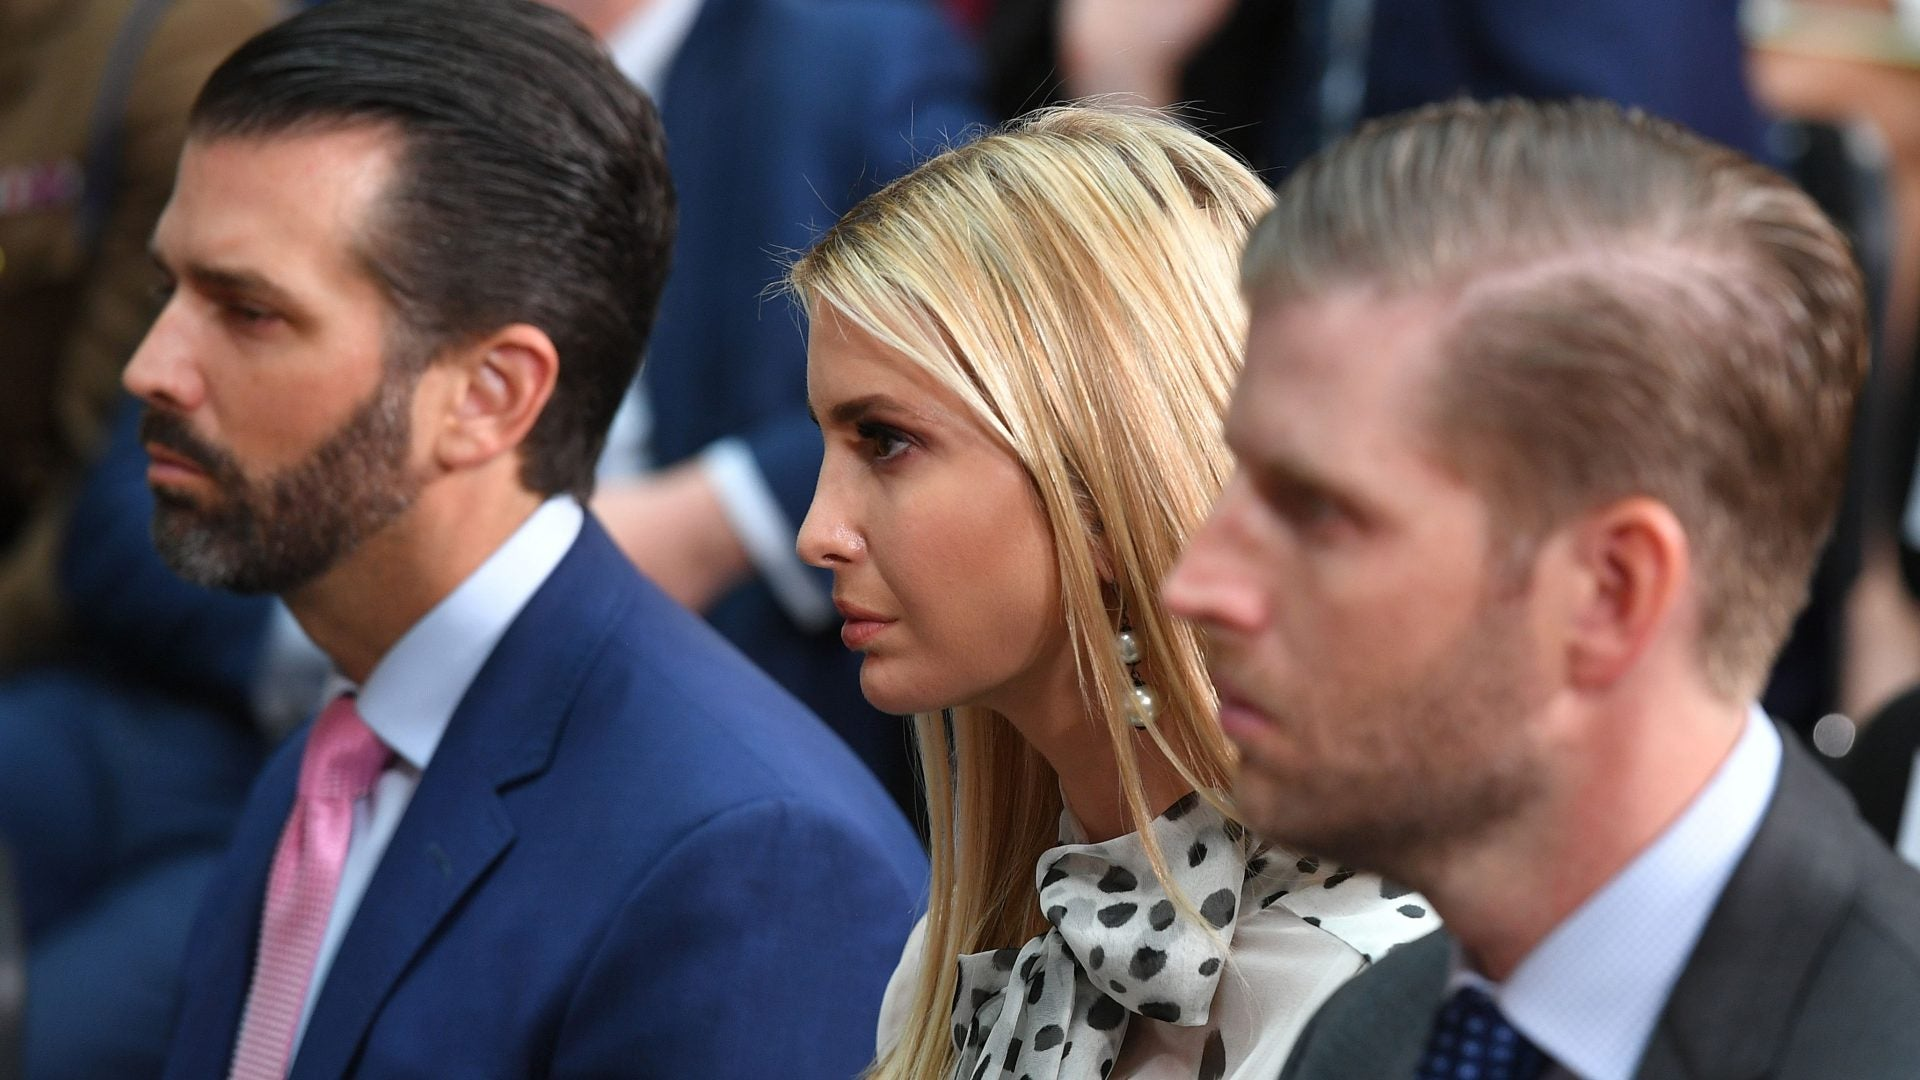 If Donald Trump Is Reelected, His Children Will Follow